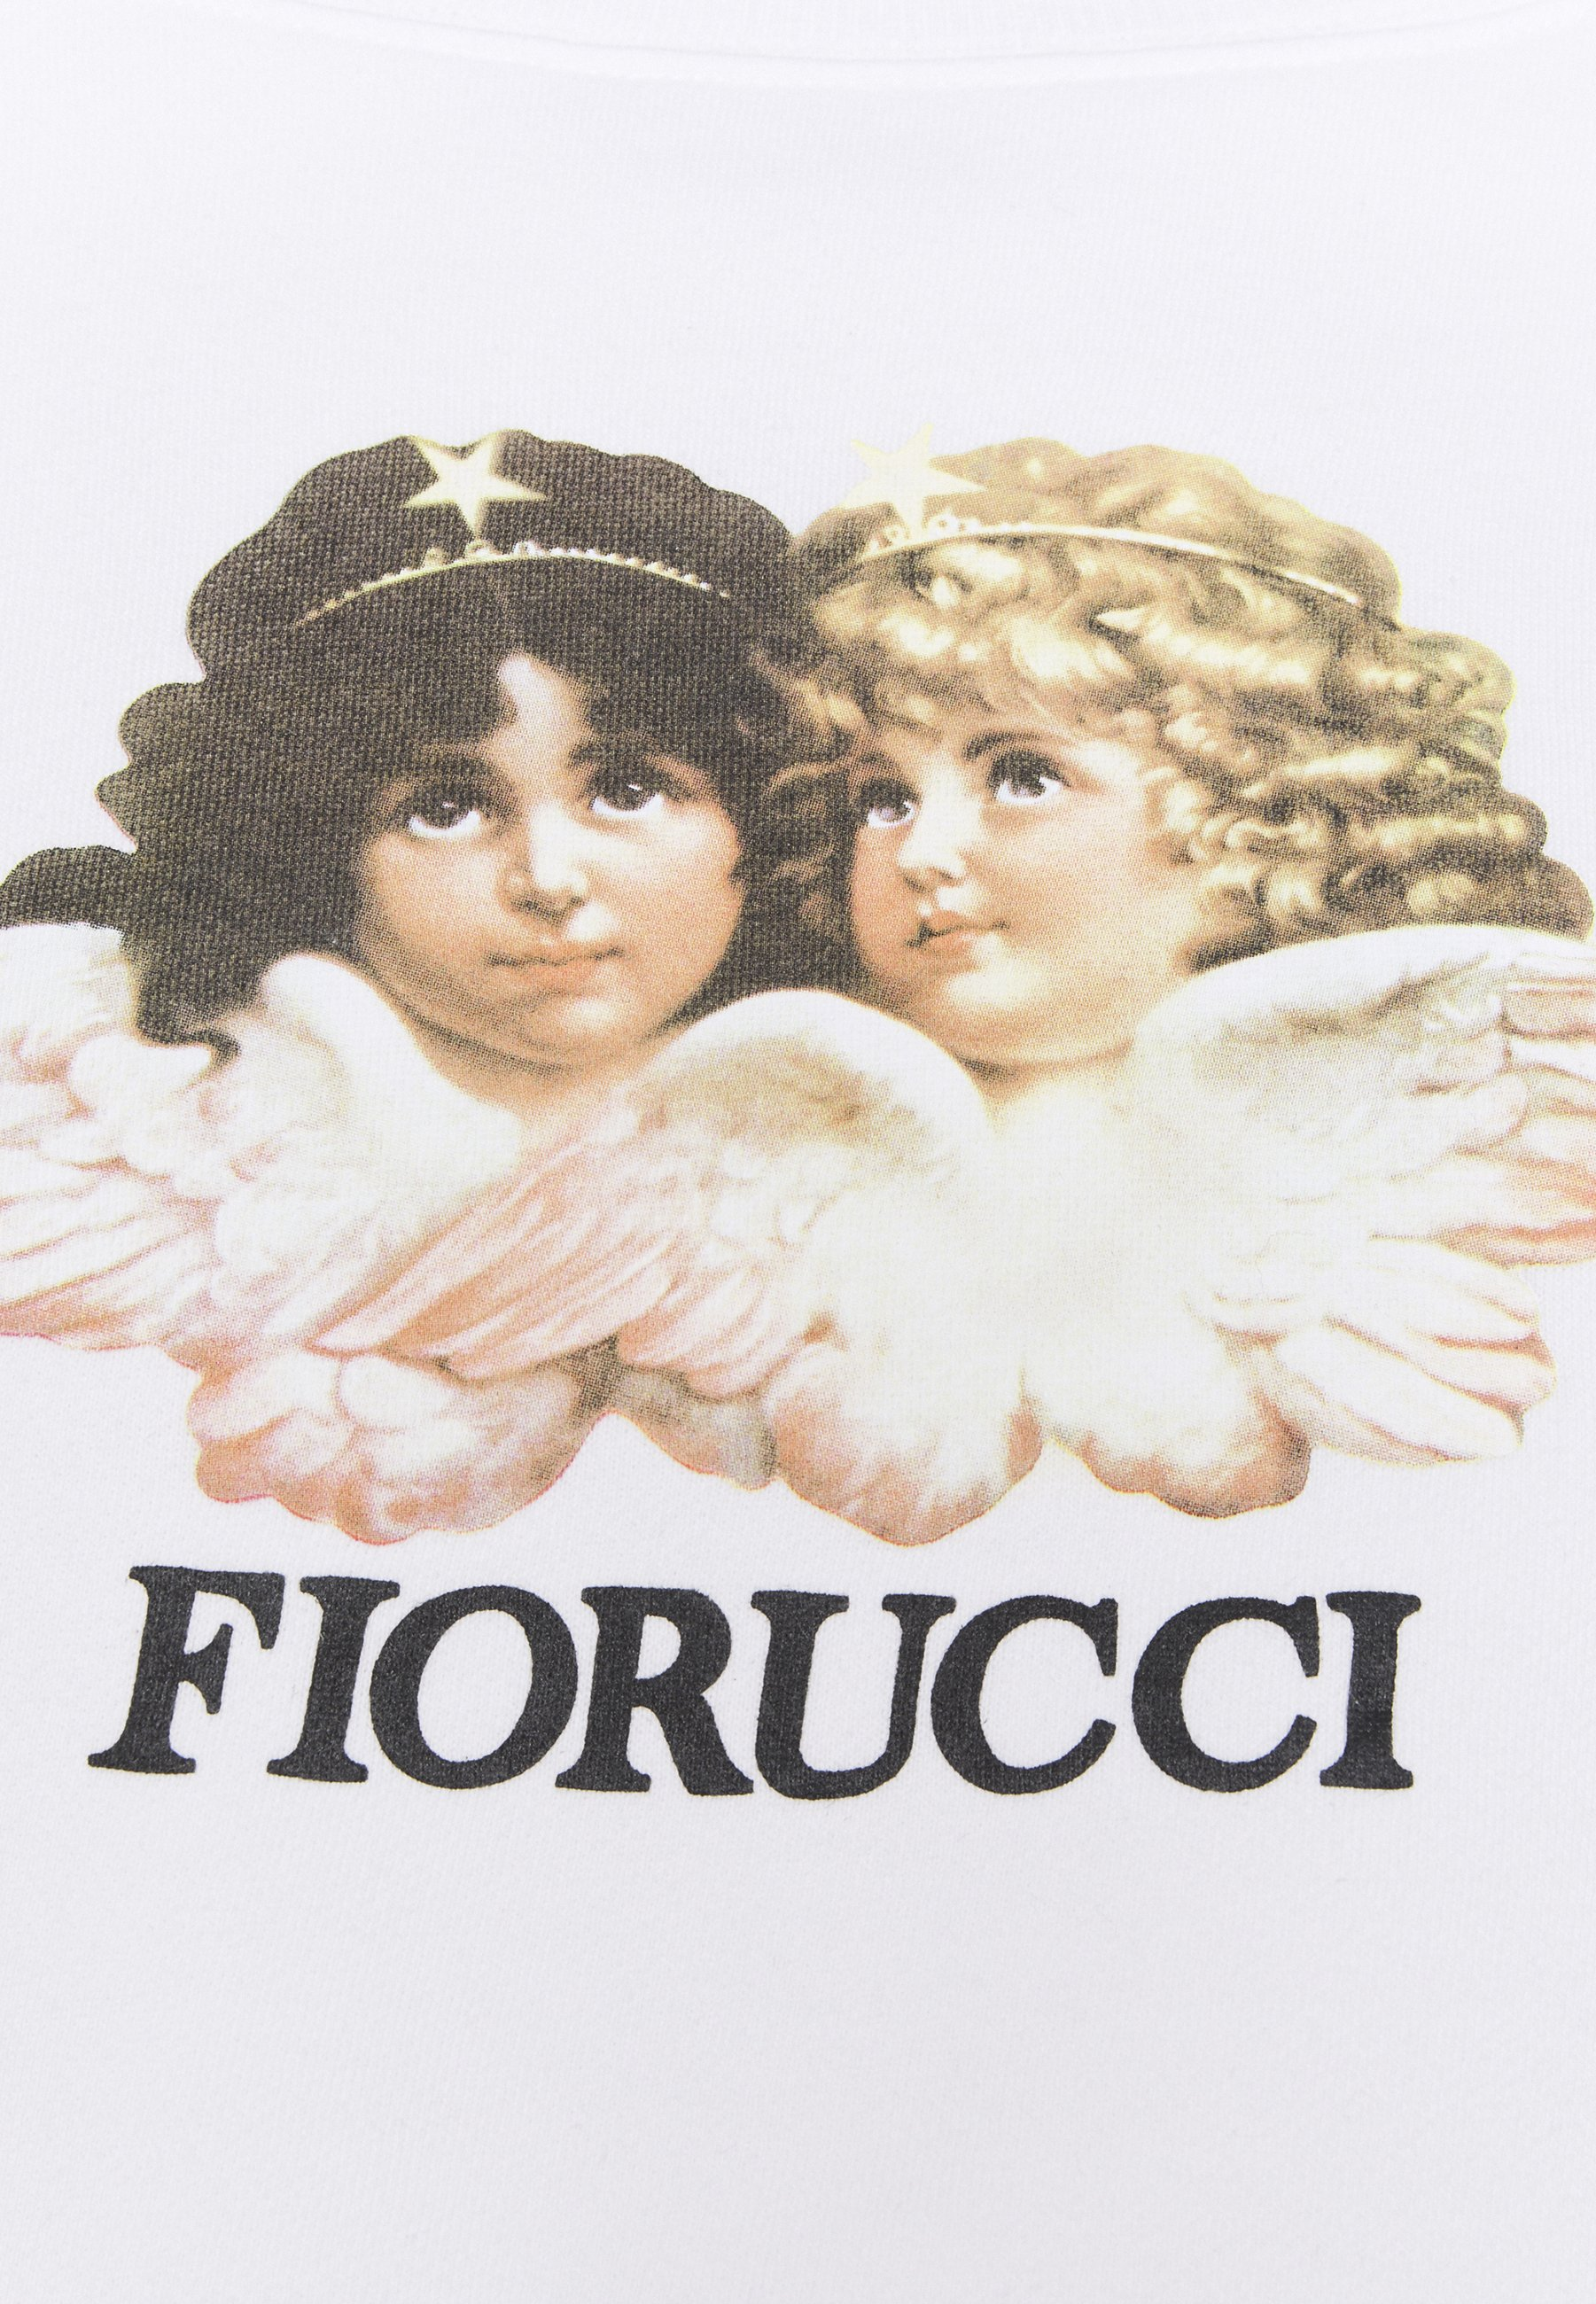 Bulk Designs Outlet Store Women's Clothing Fiorucci VINTAGE ANGELS CROPPED  Sweatshirt white 5y5lvz6eD oWhfhydyM